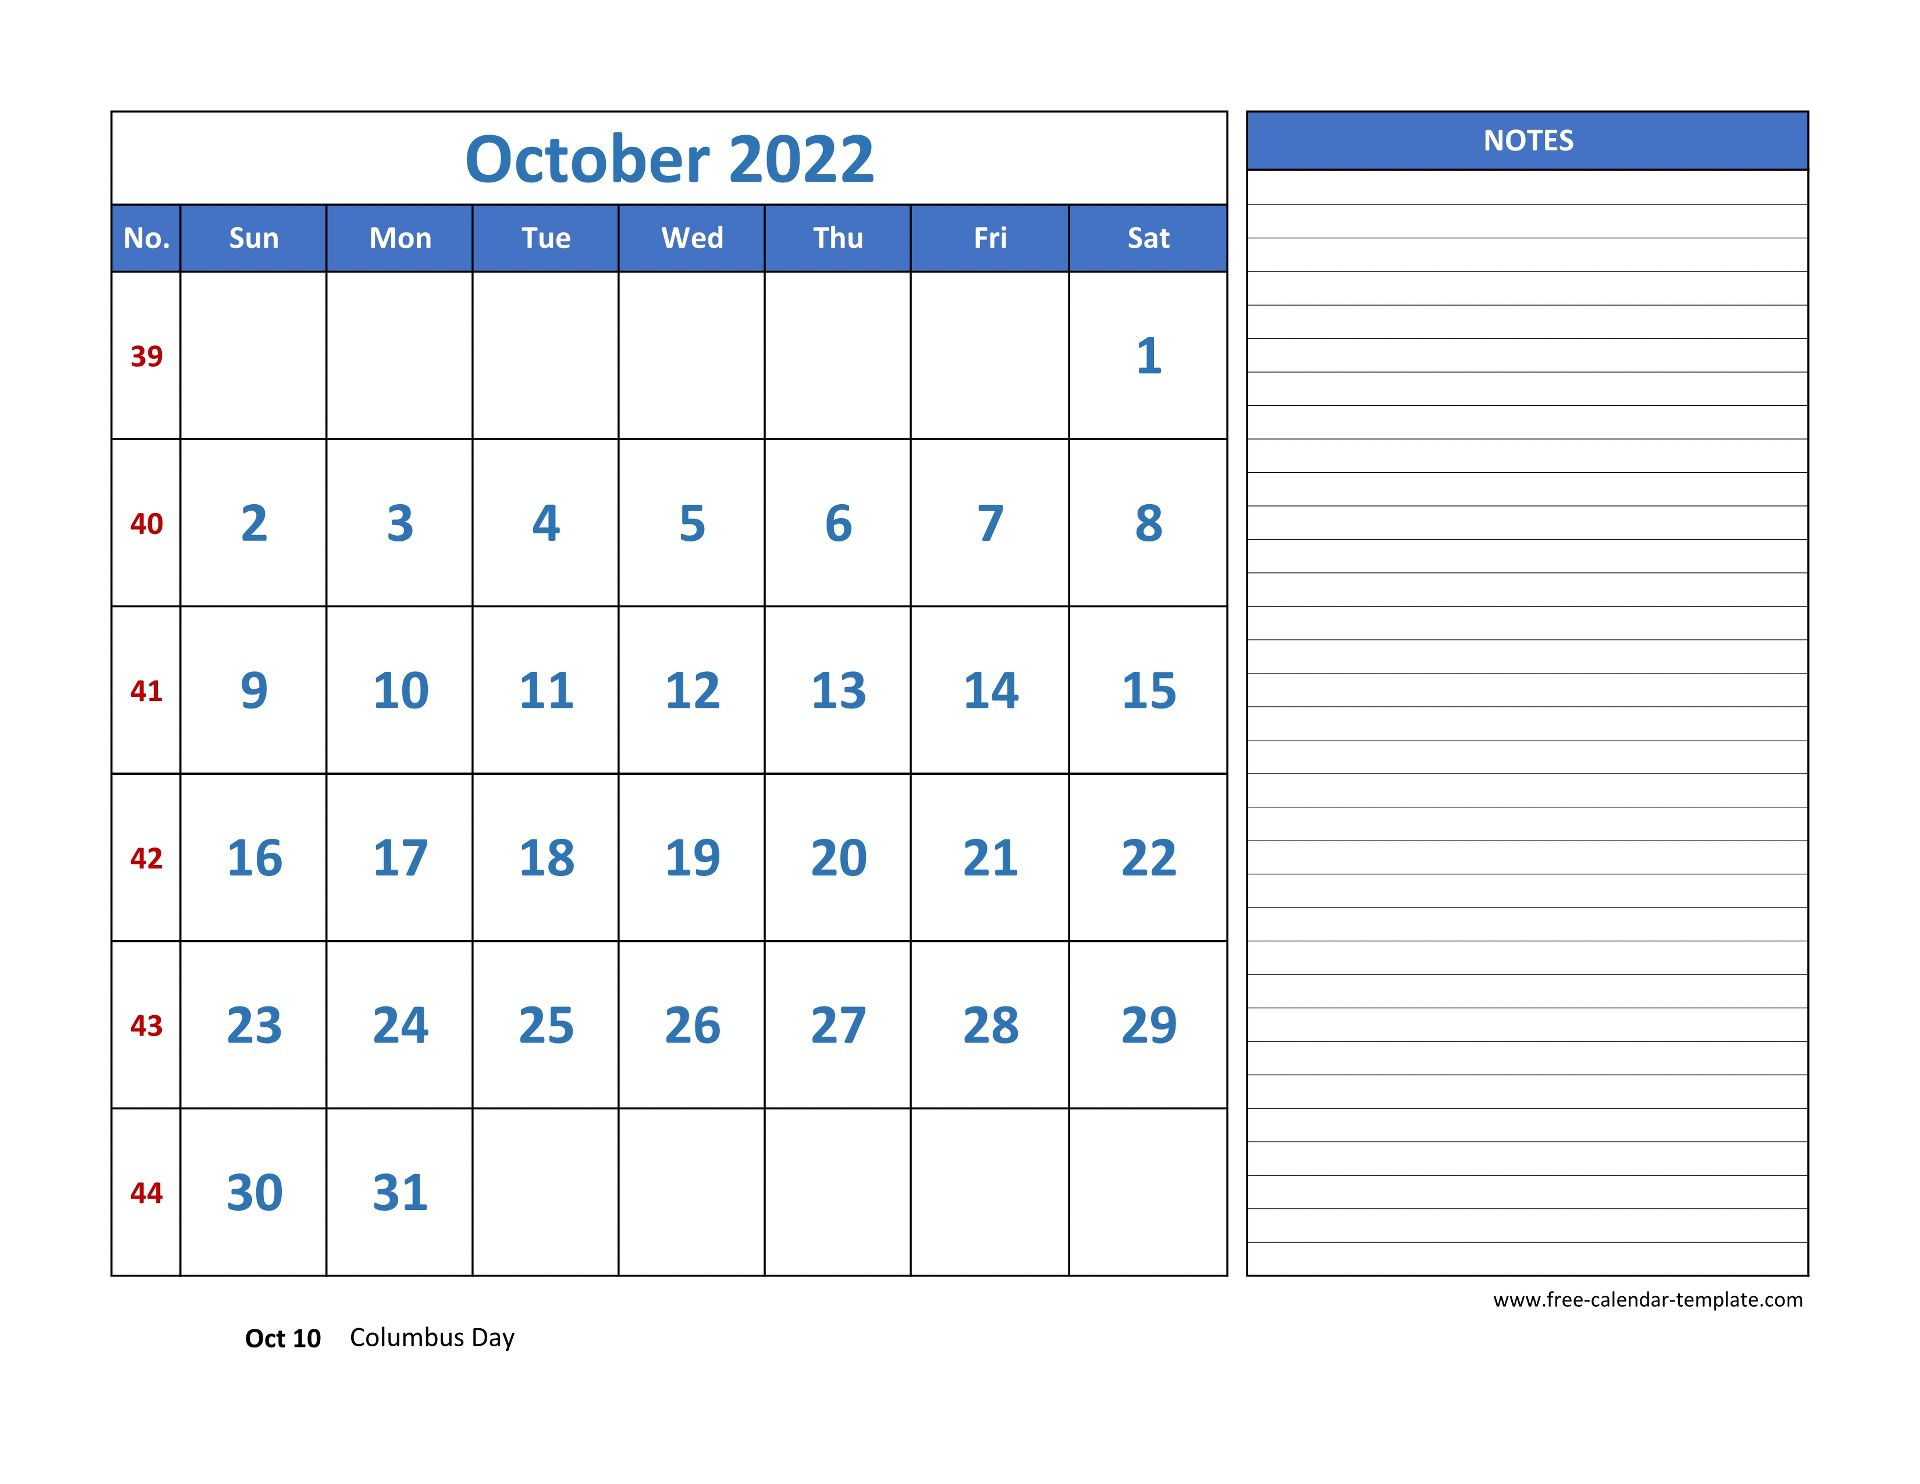 October Calendar 2022 grid lines for holidays and notes ...